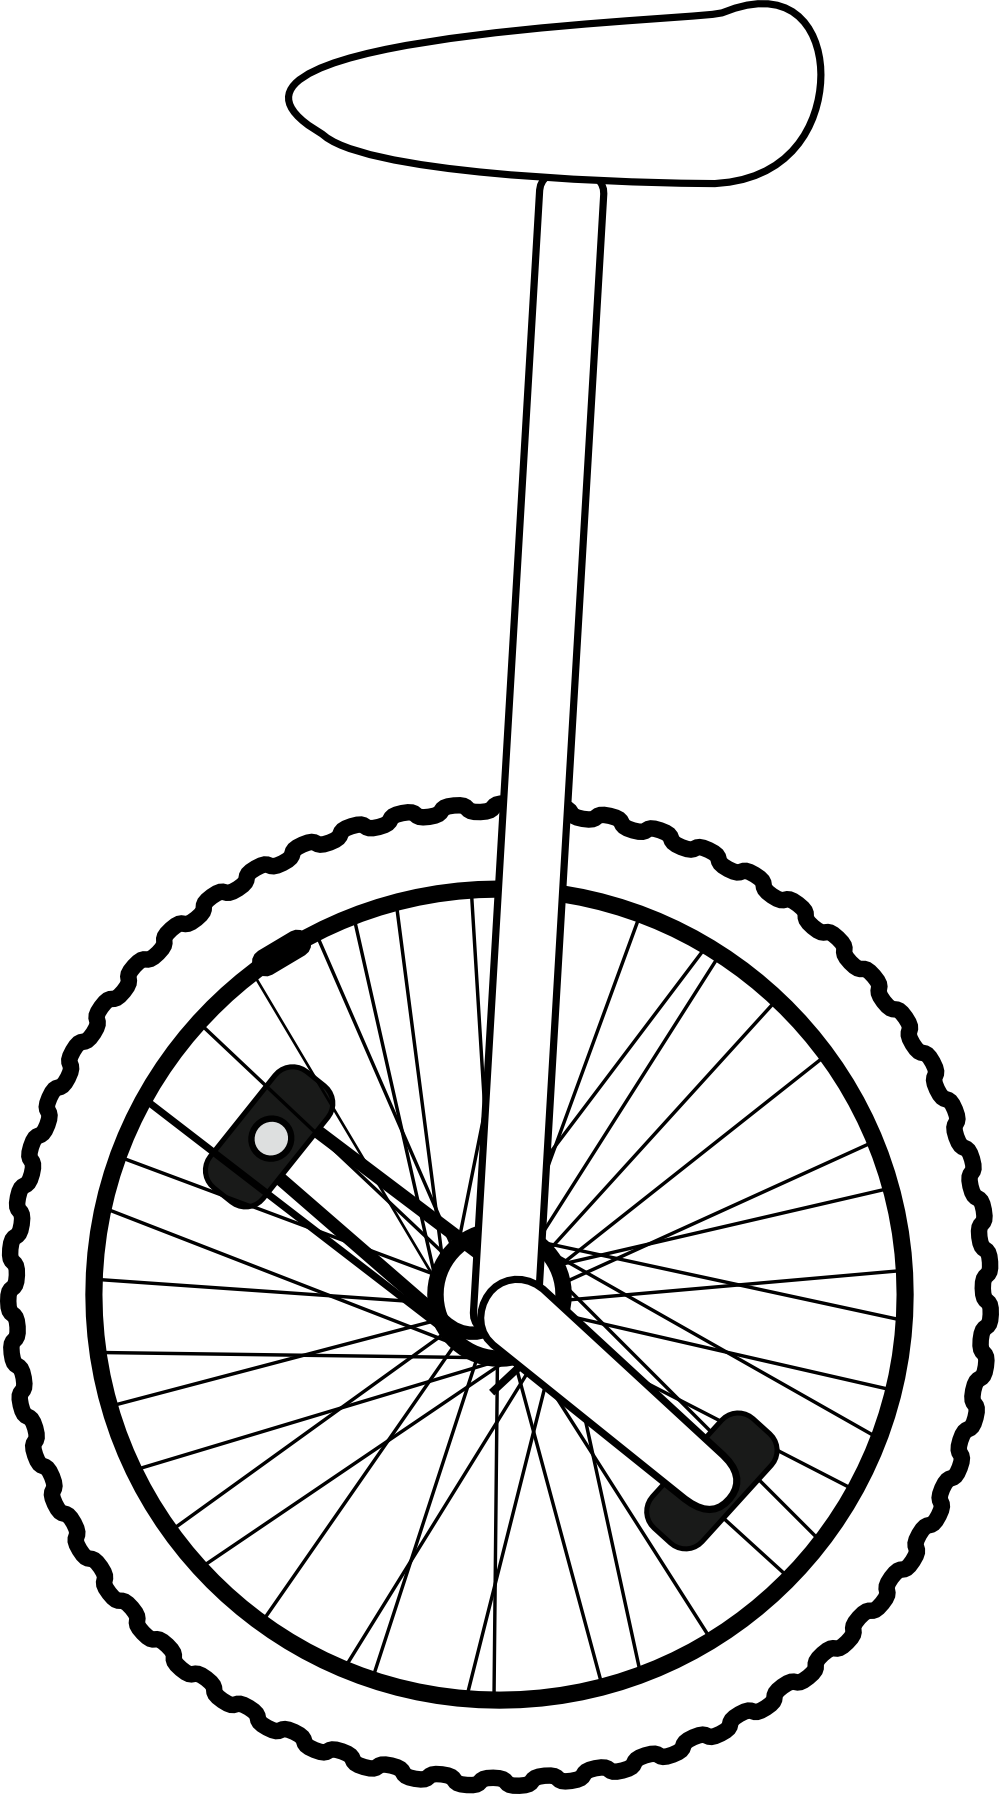 banner freeuse Unicycle panda free images. Wheel black and white clipart